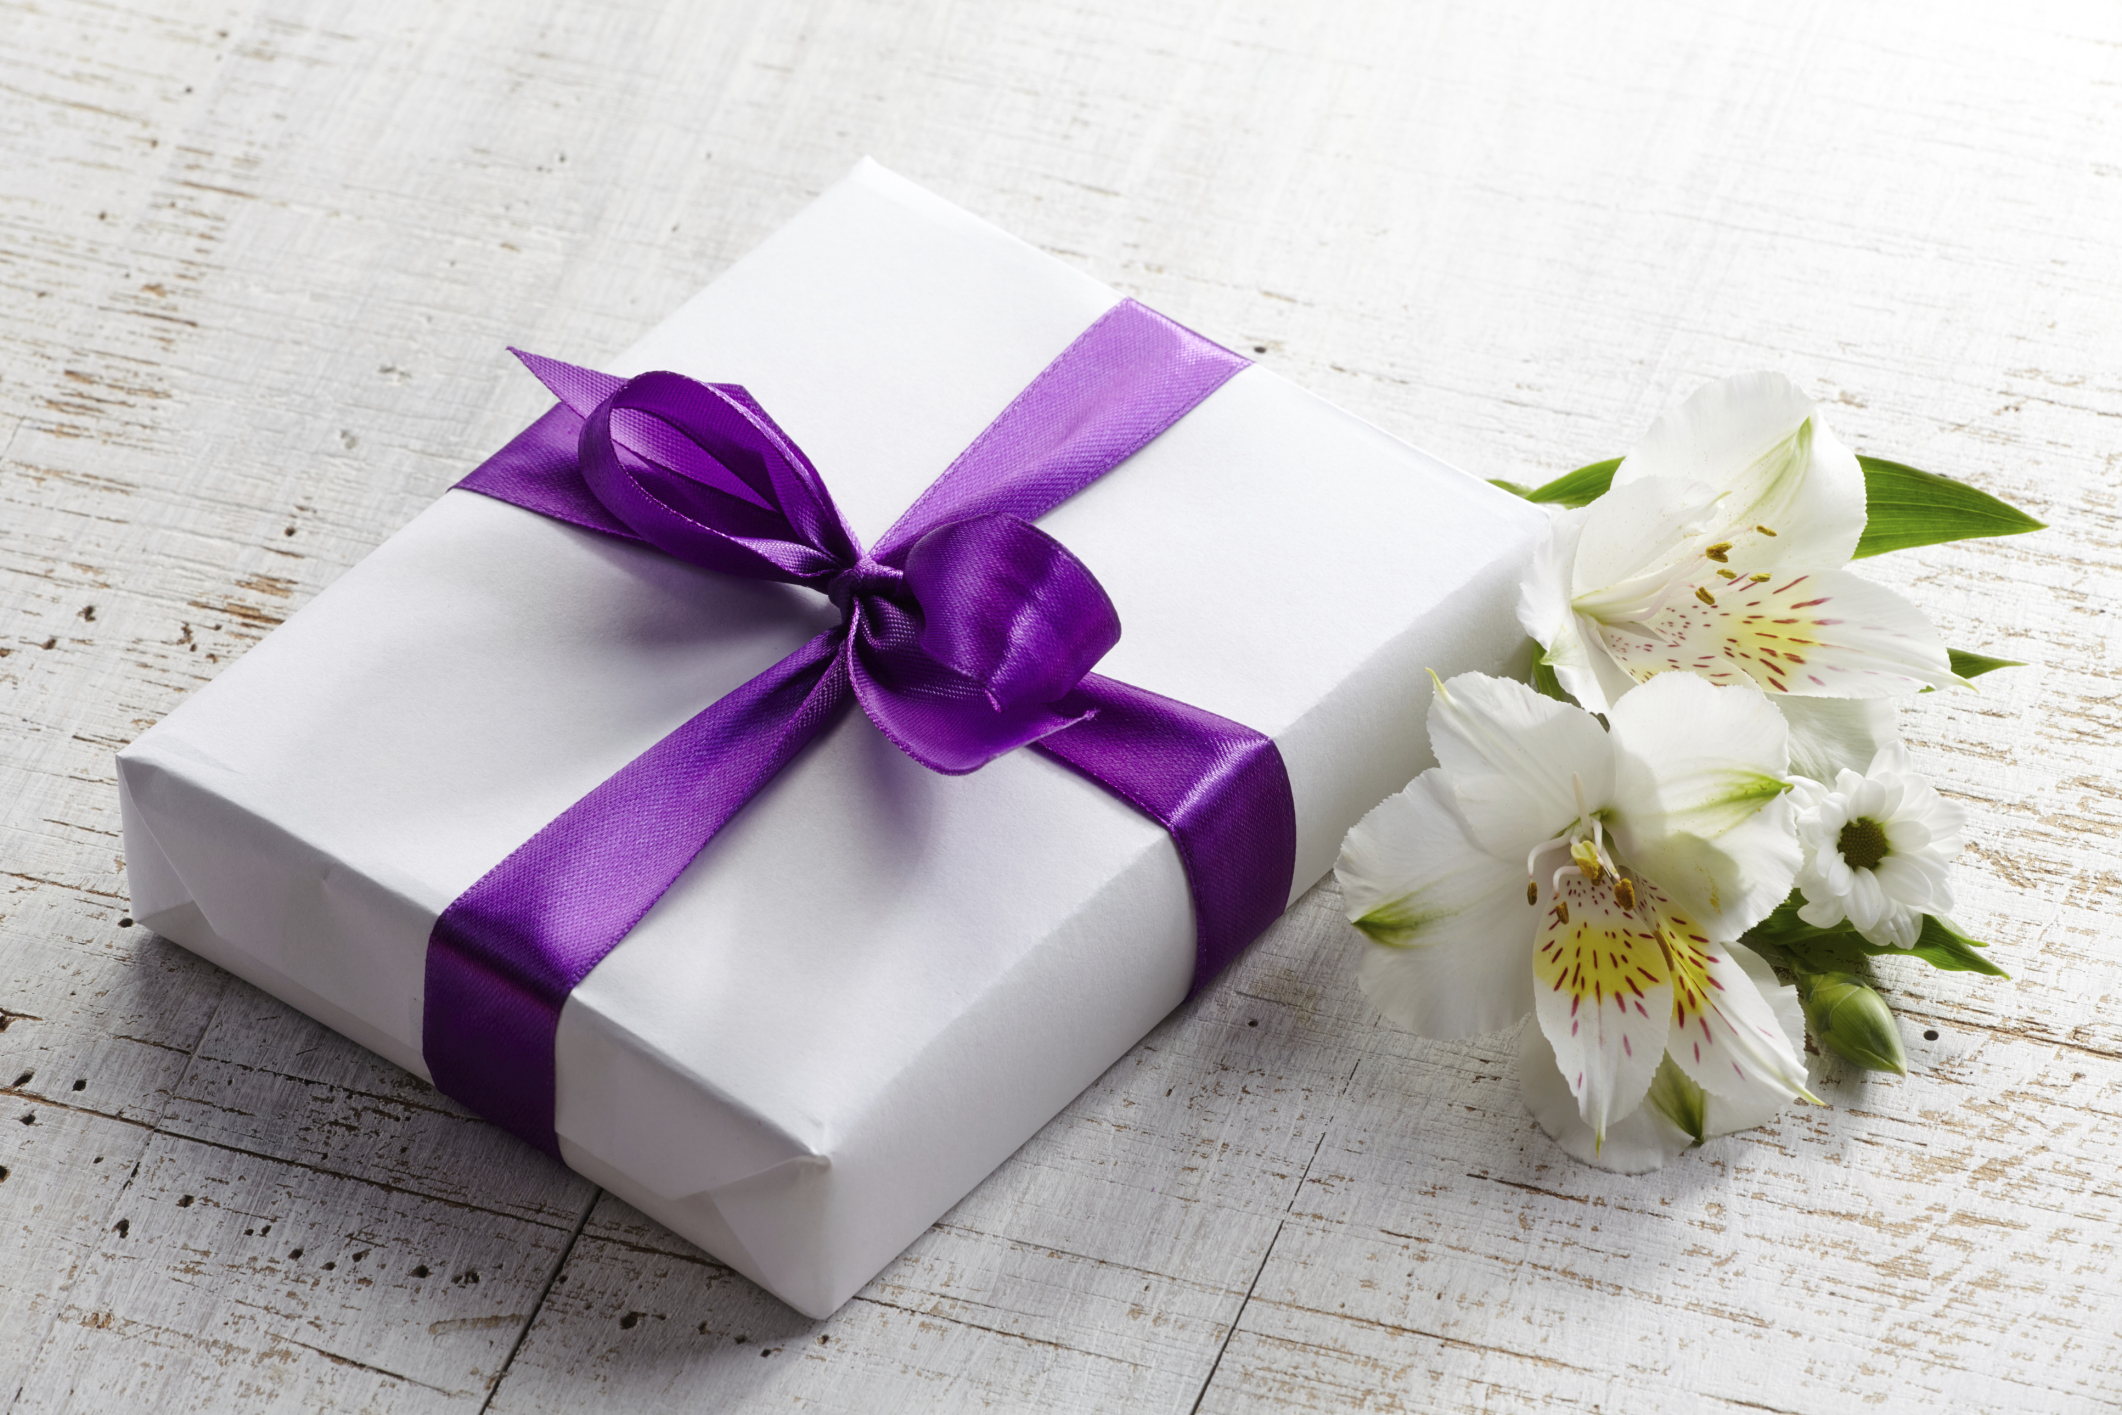 Wedding Gift Check Bounced : Wedding gift problems and how to solve them Easy Weddings UK - Easy ...